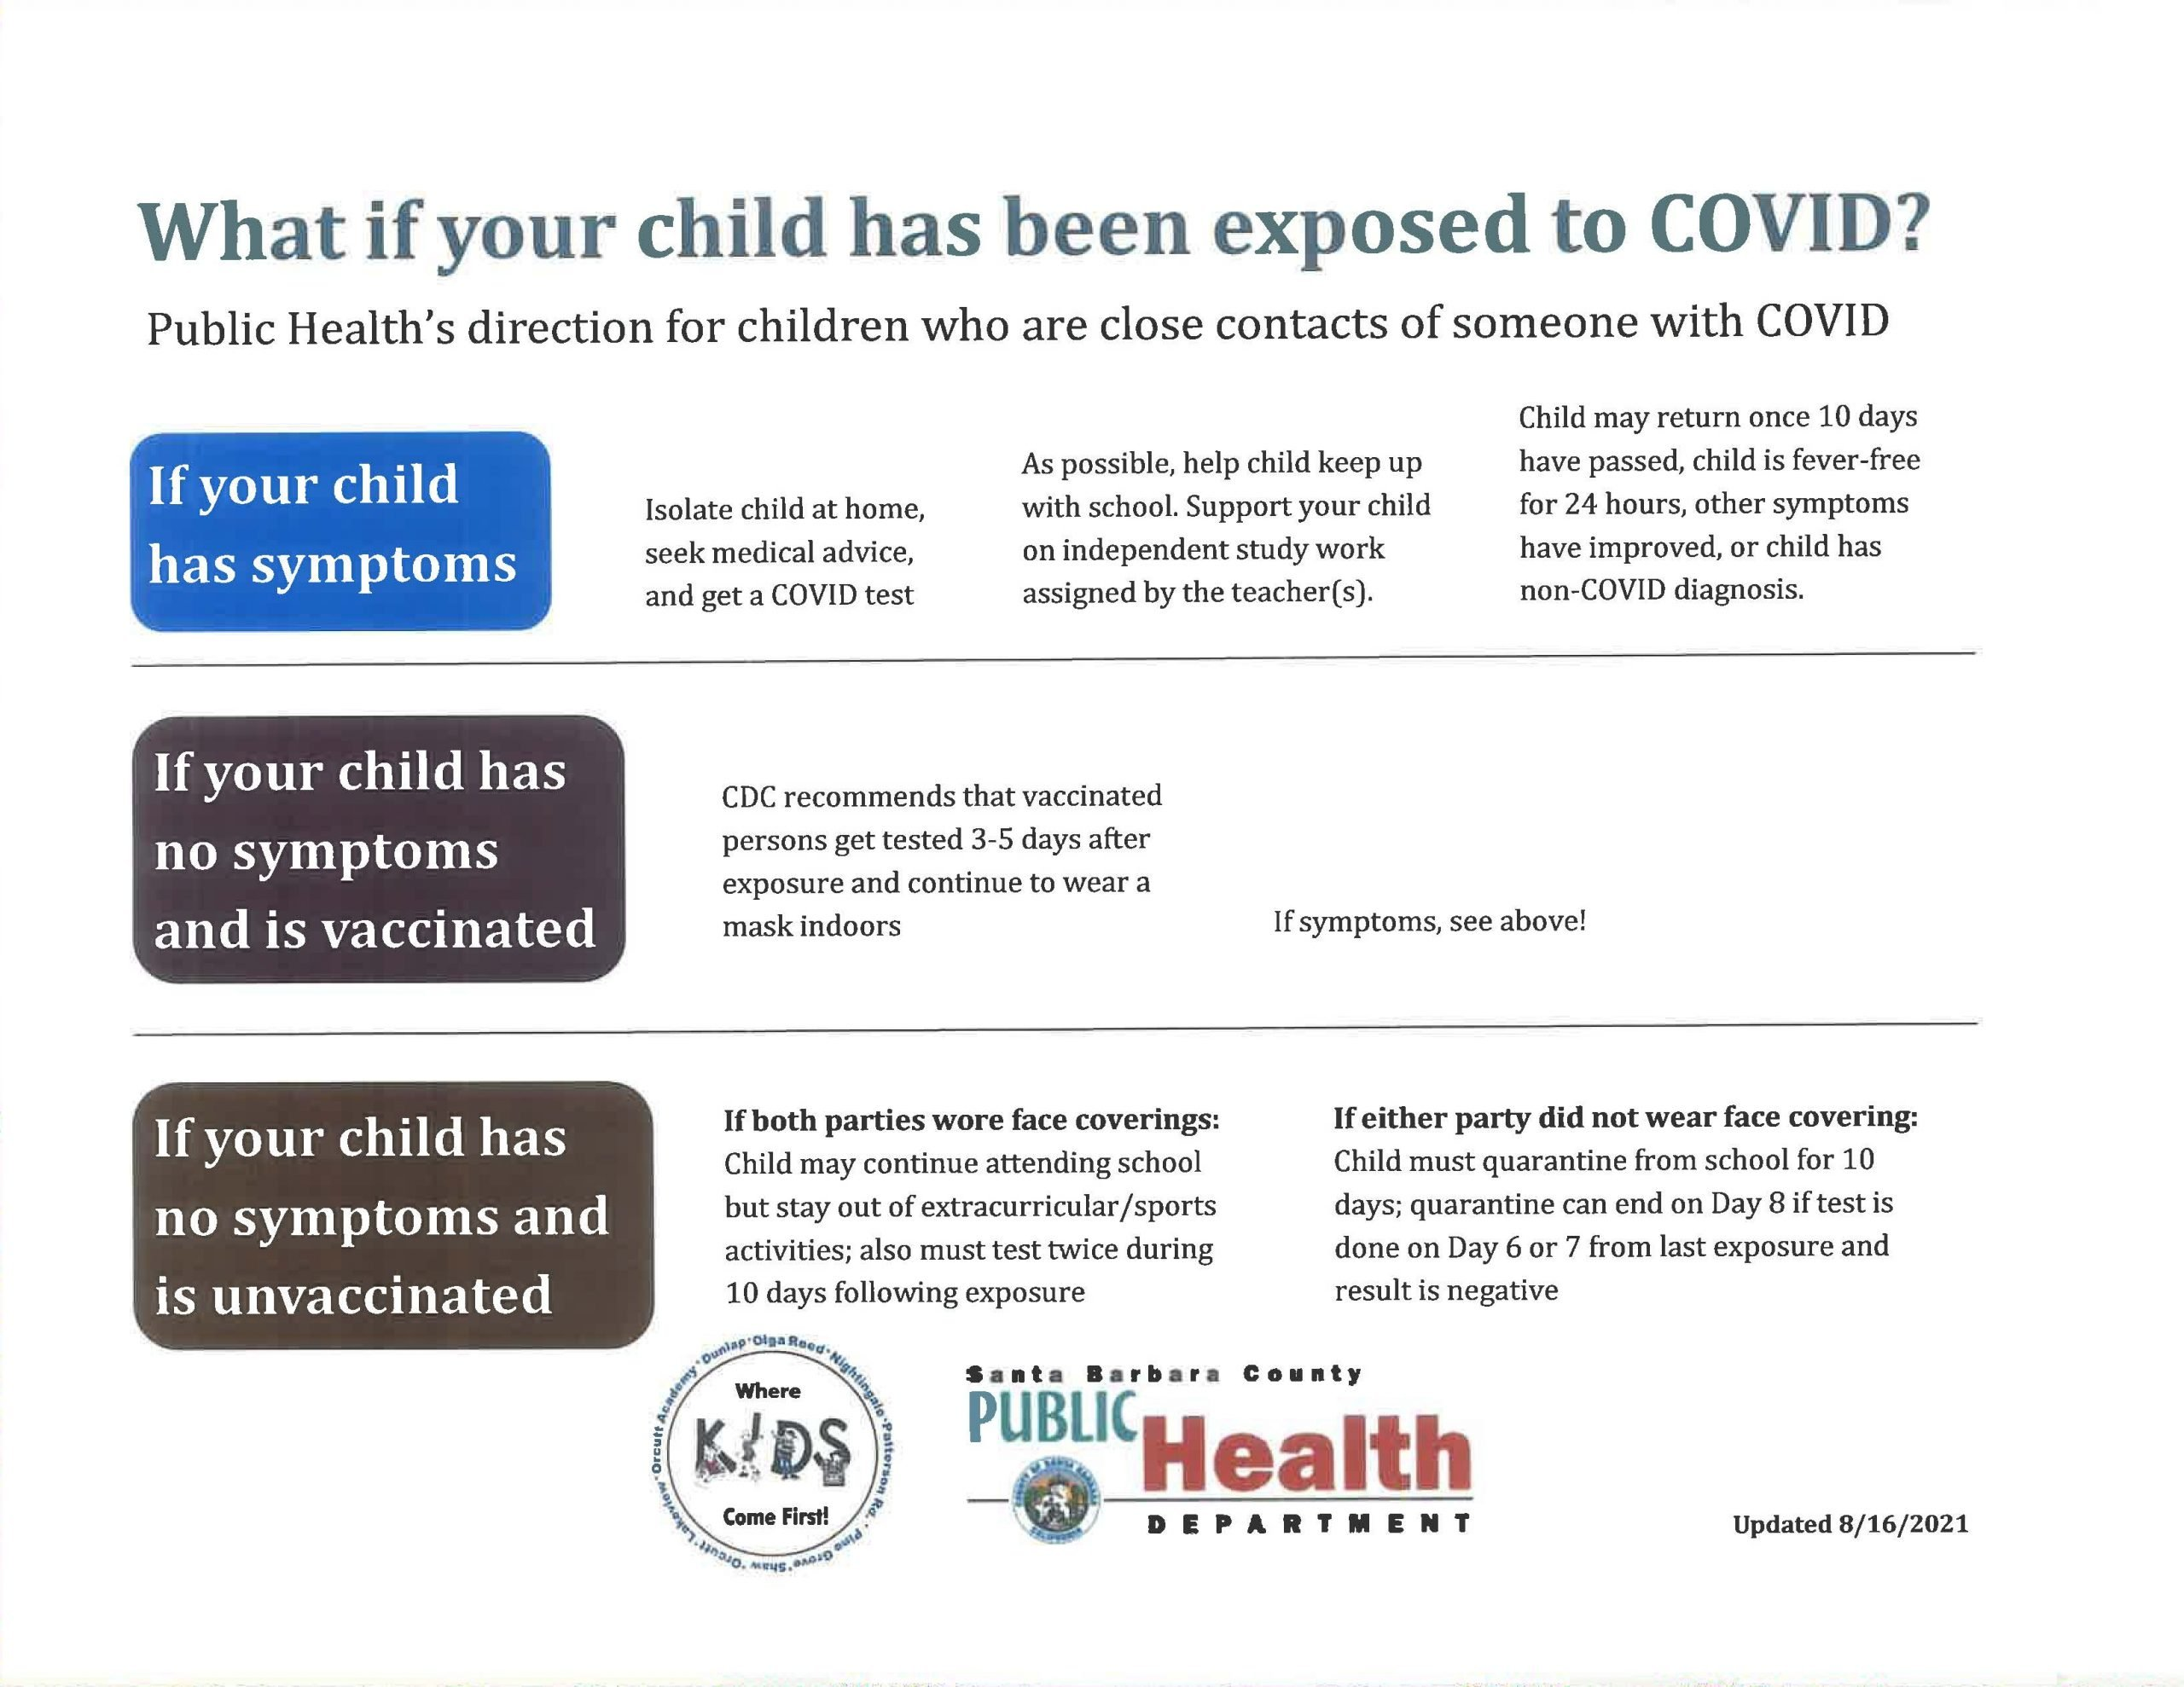 Infographic of steps to take when child is exposed to COVID-19